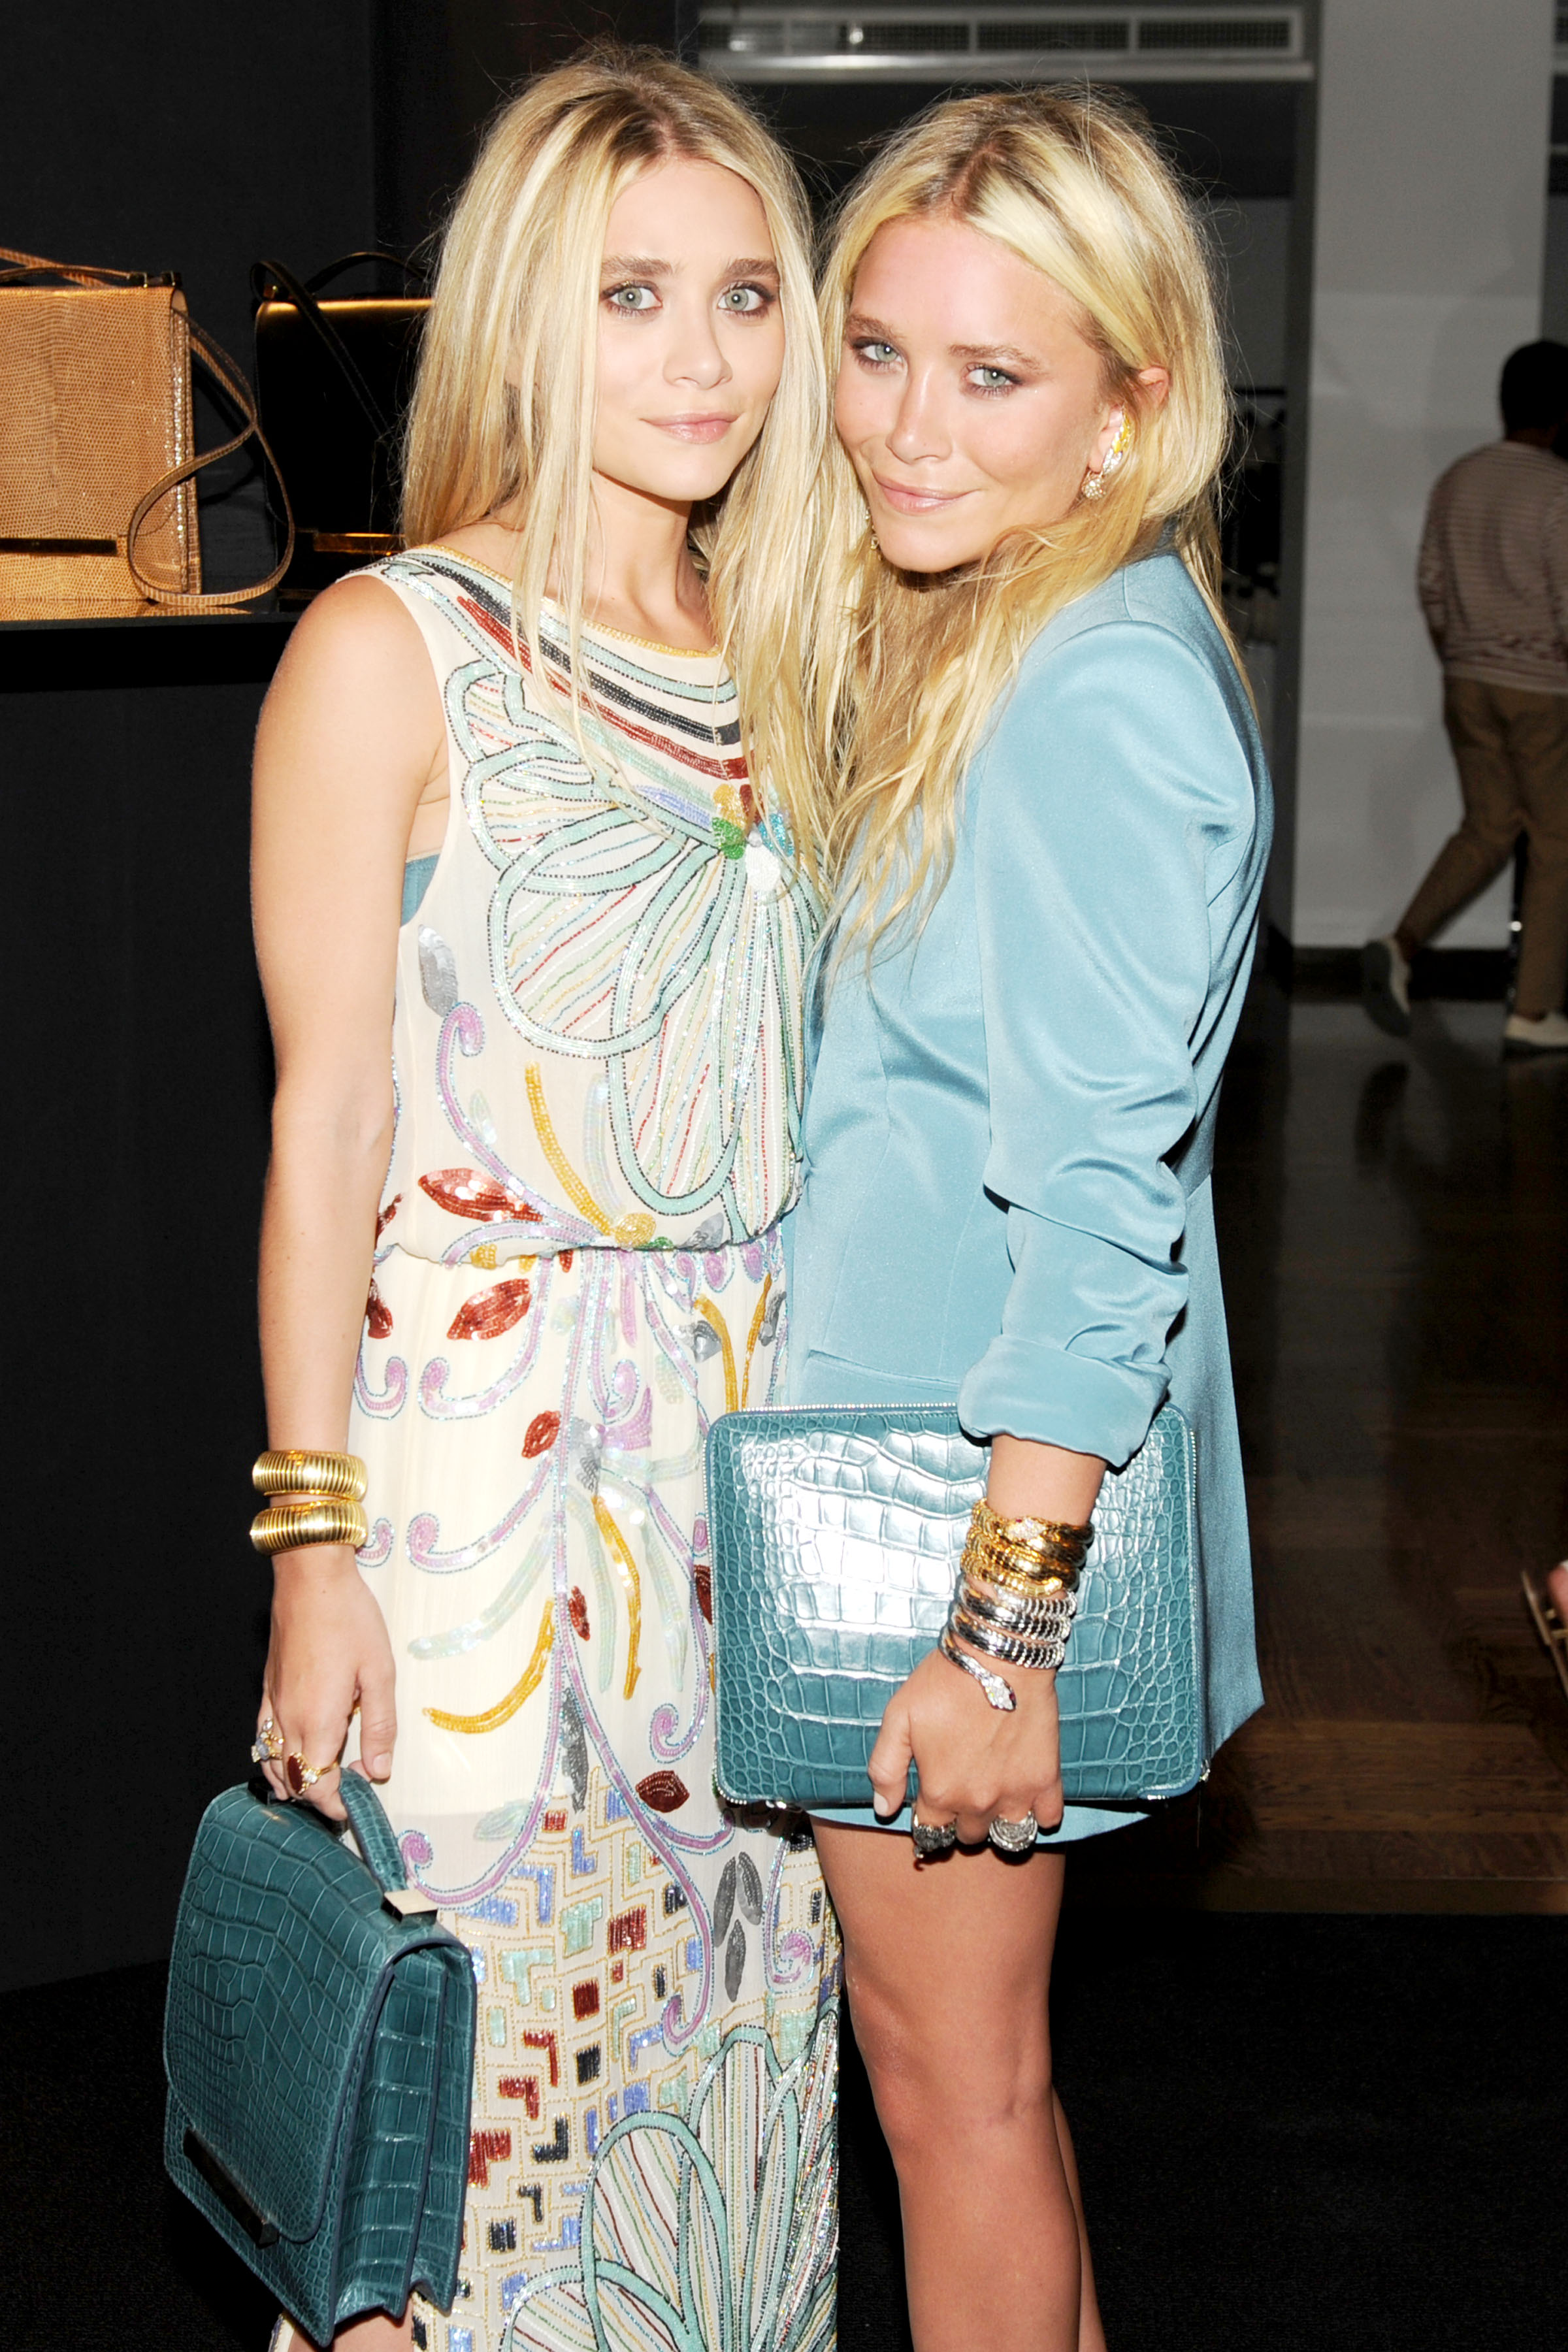 Mary-Kate Olsen and Ashley Olsen launch The Row's handbags.